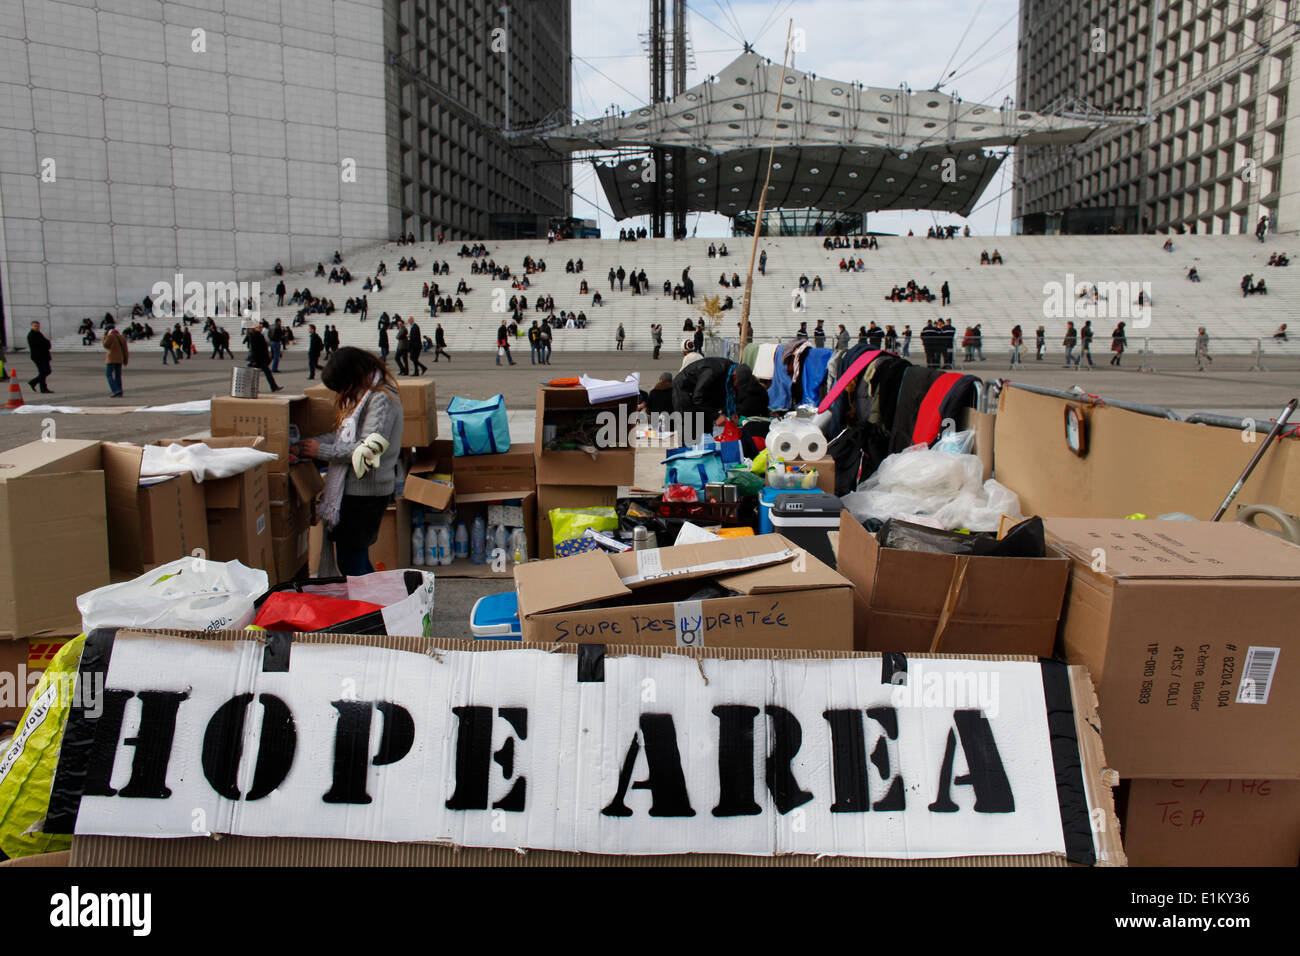 Protest camp at La Defense business district - Stock Image